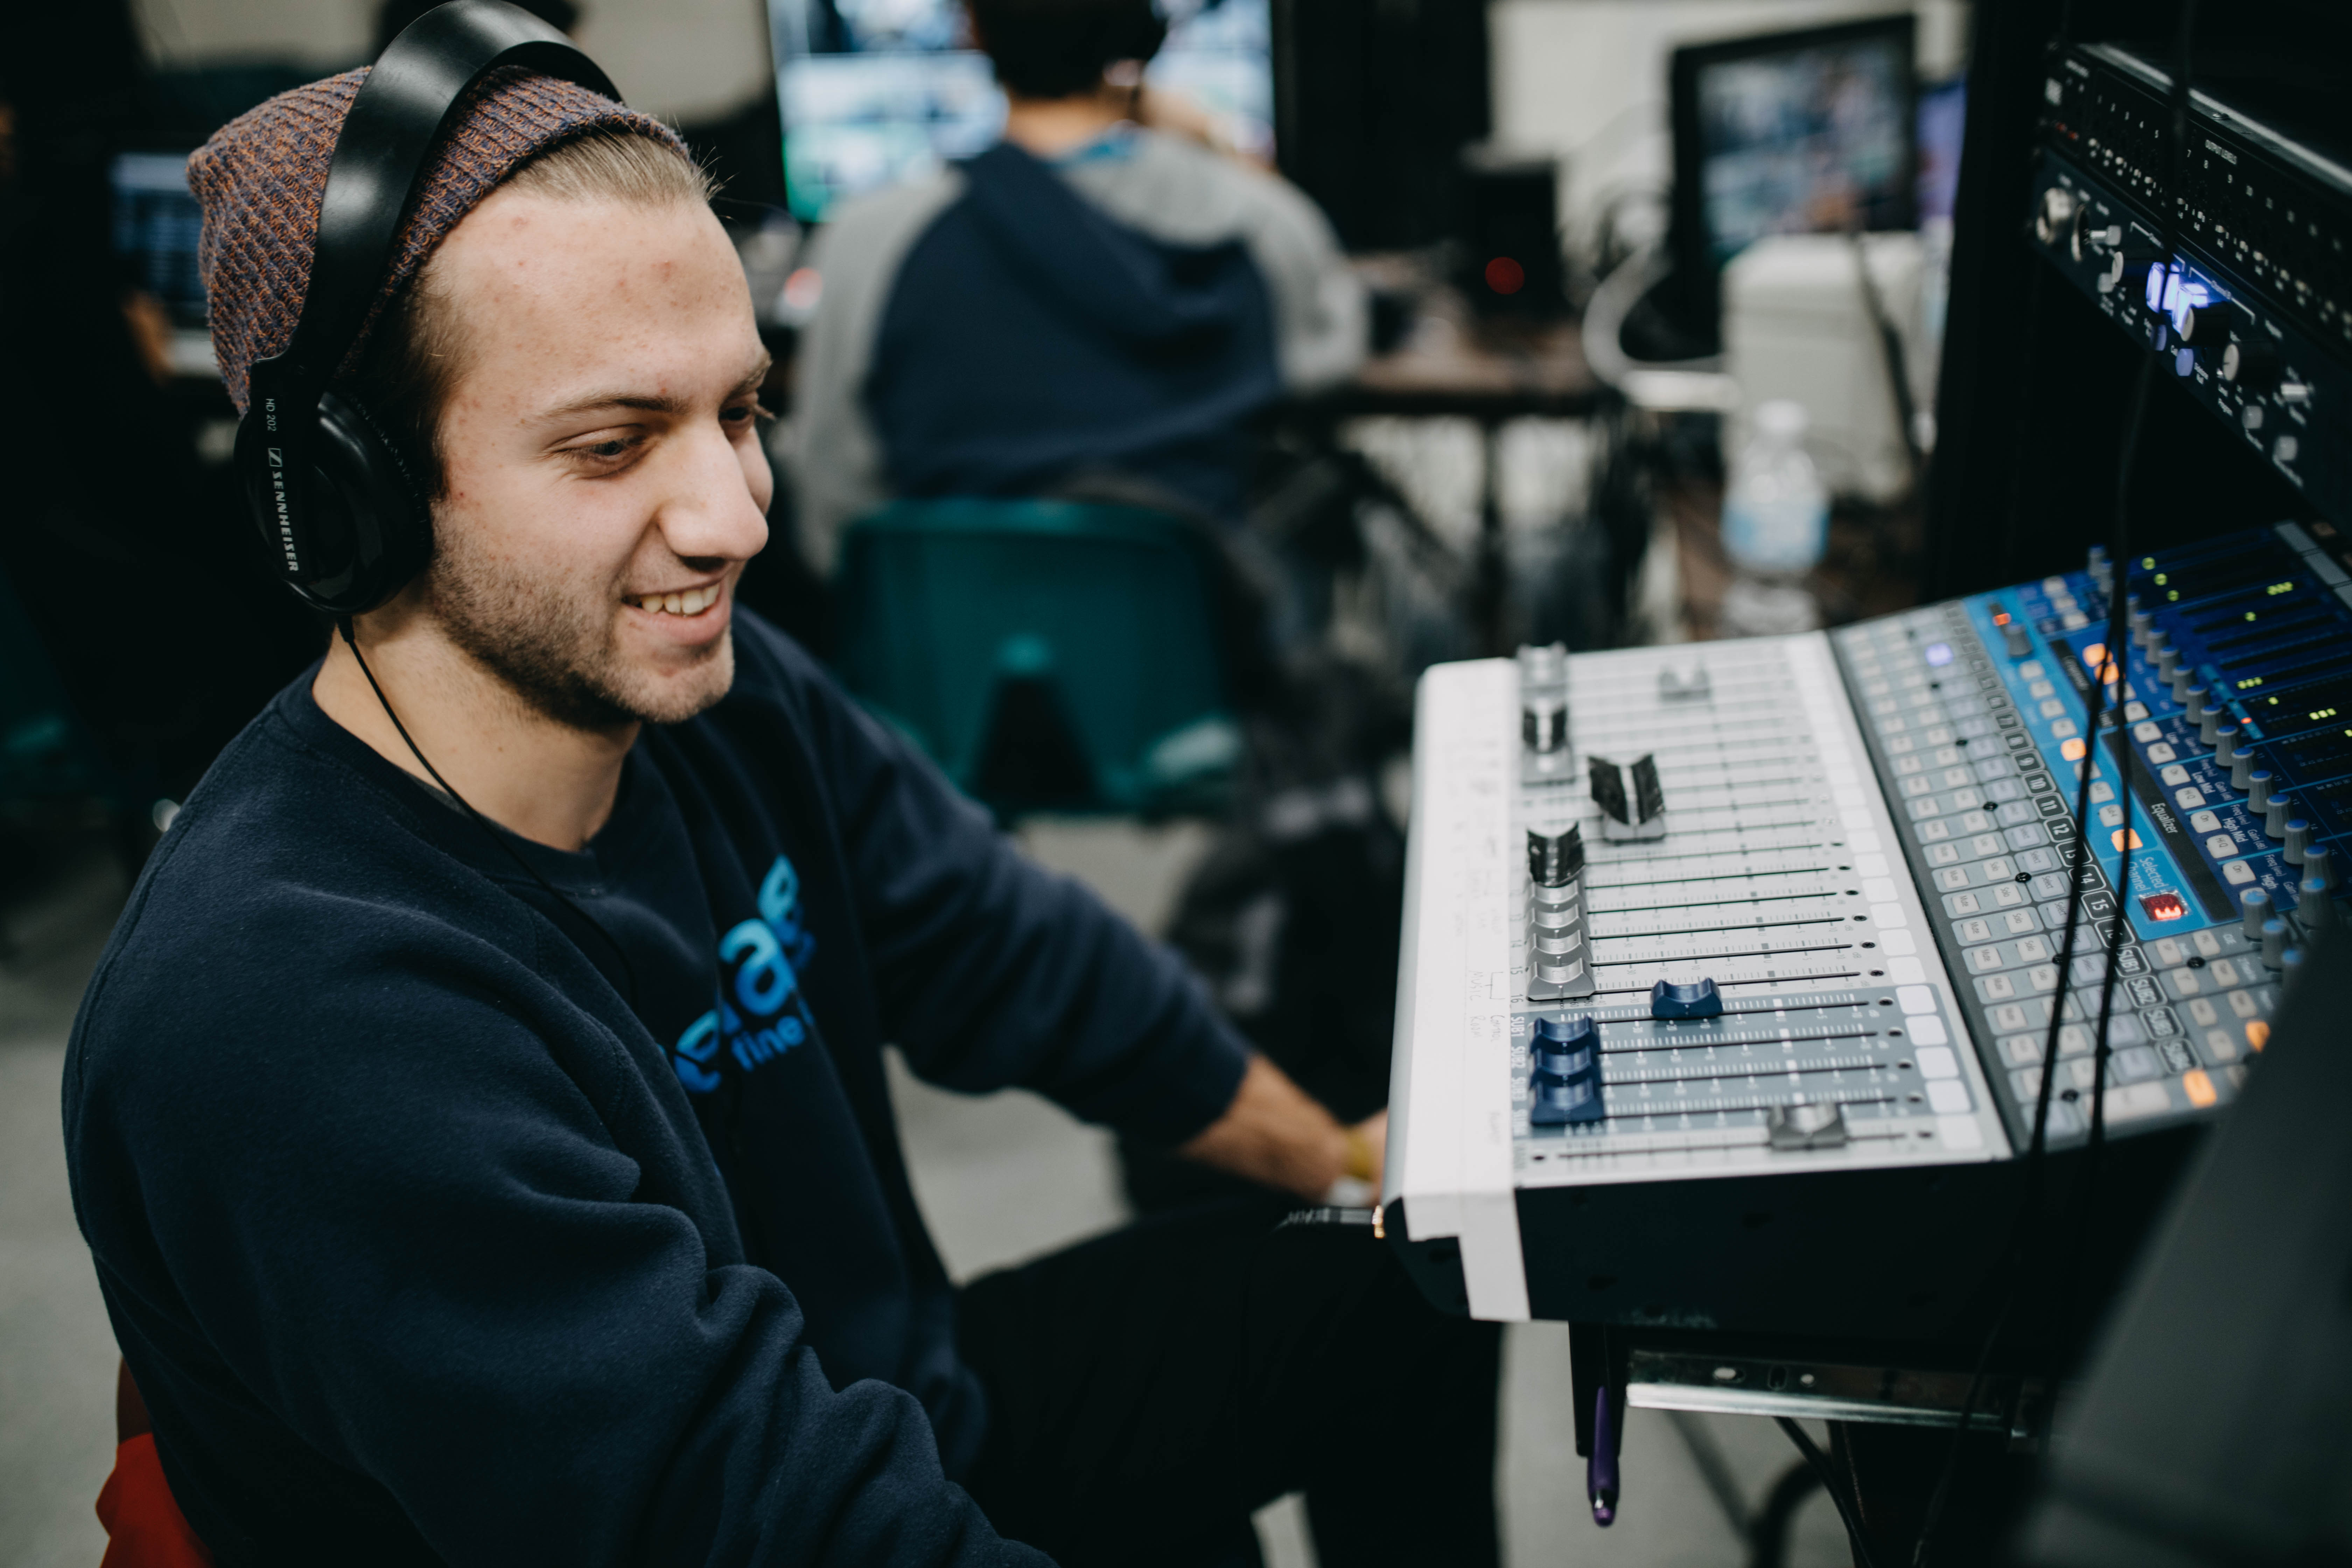 Man smiling as he works on a soundboard